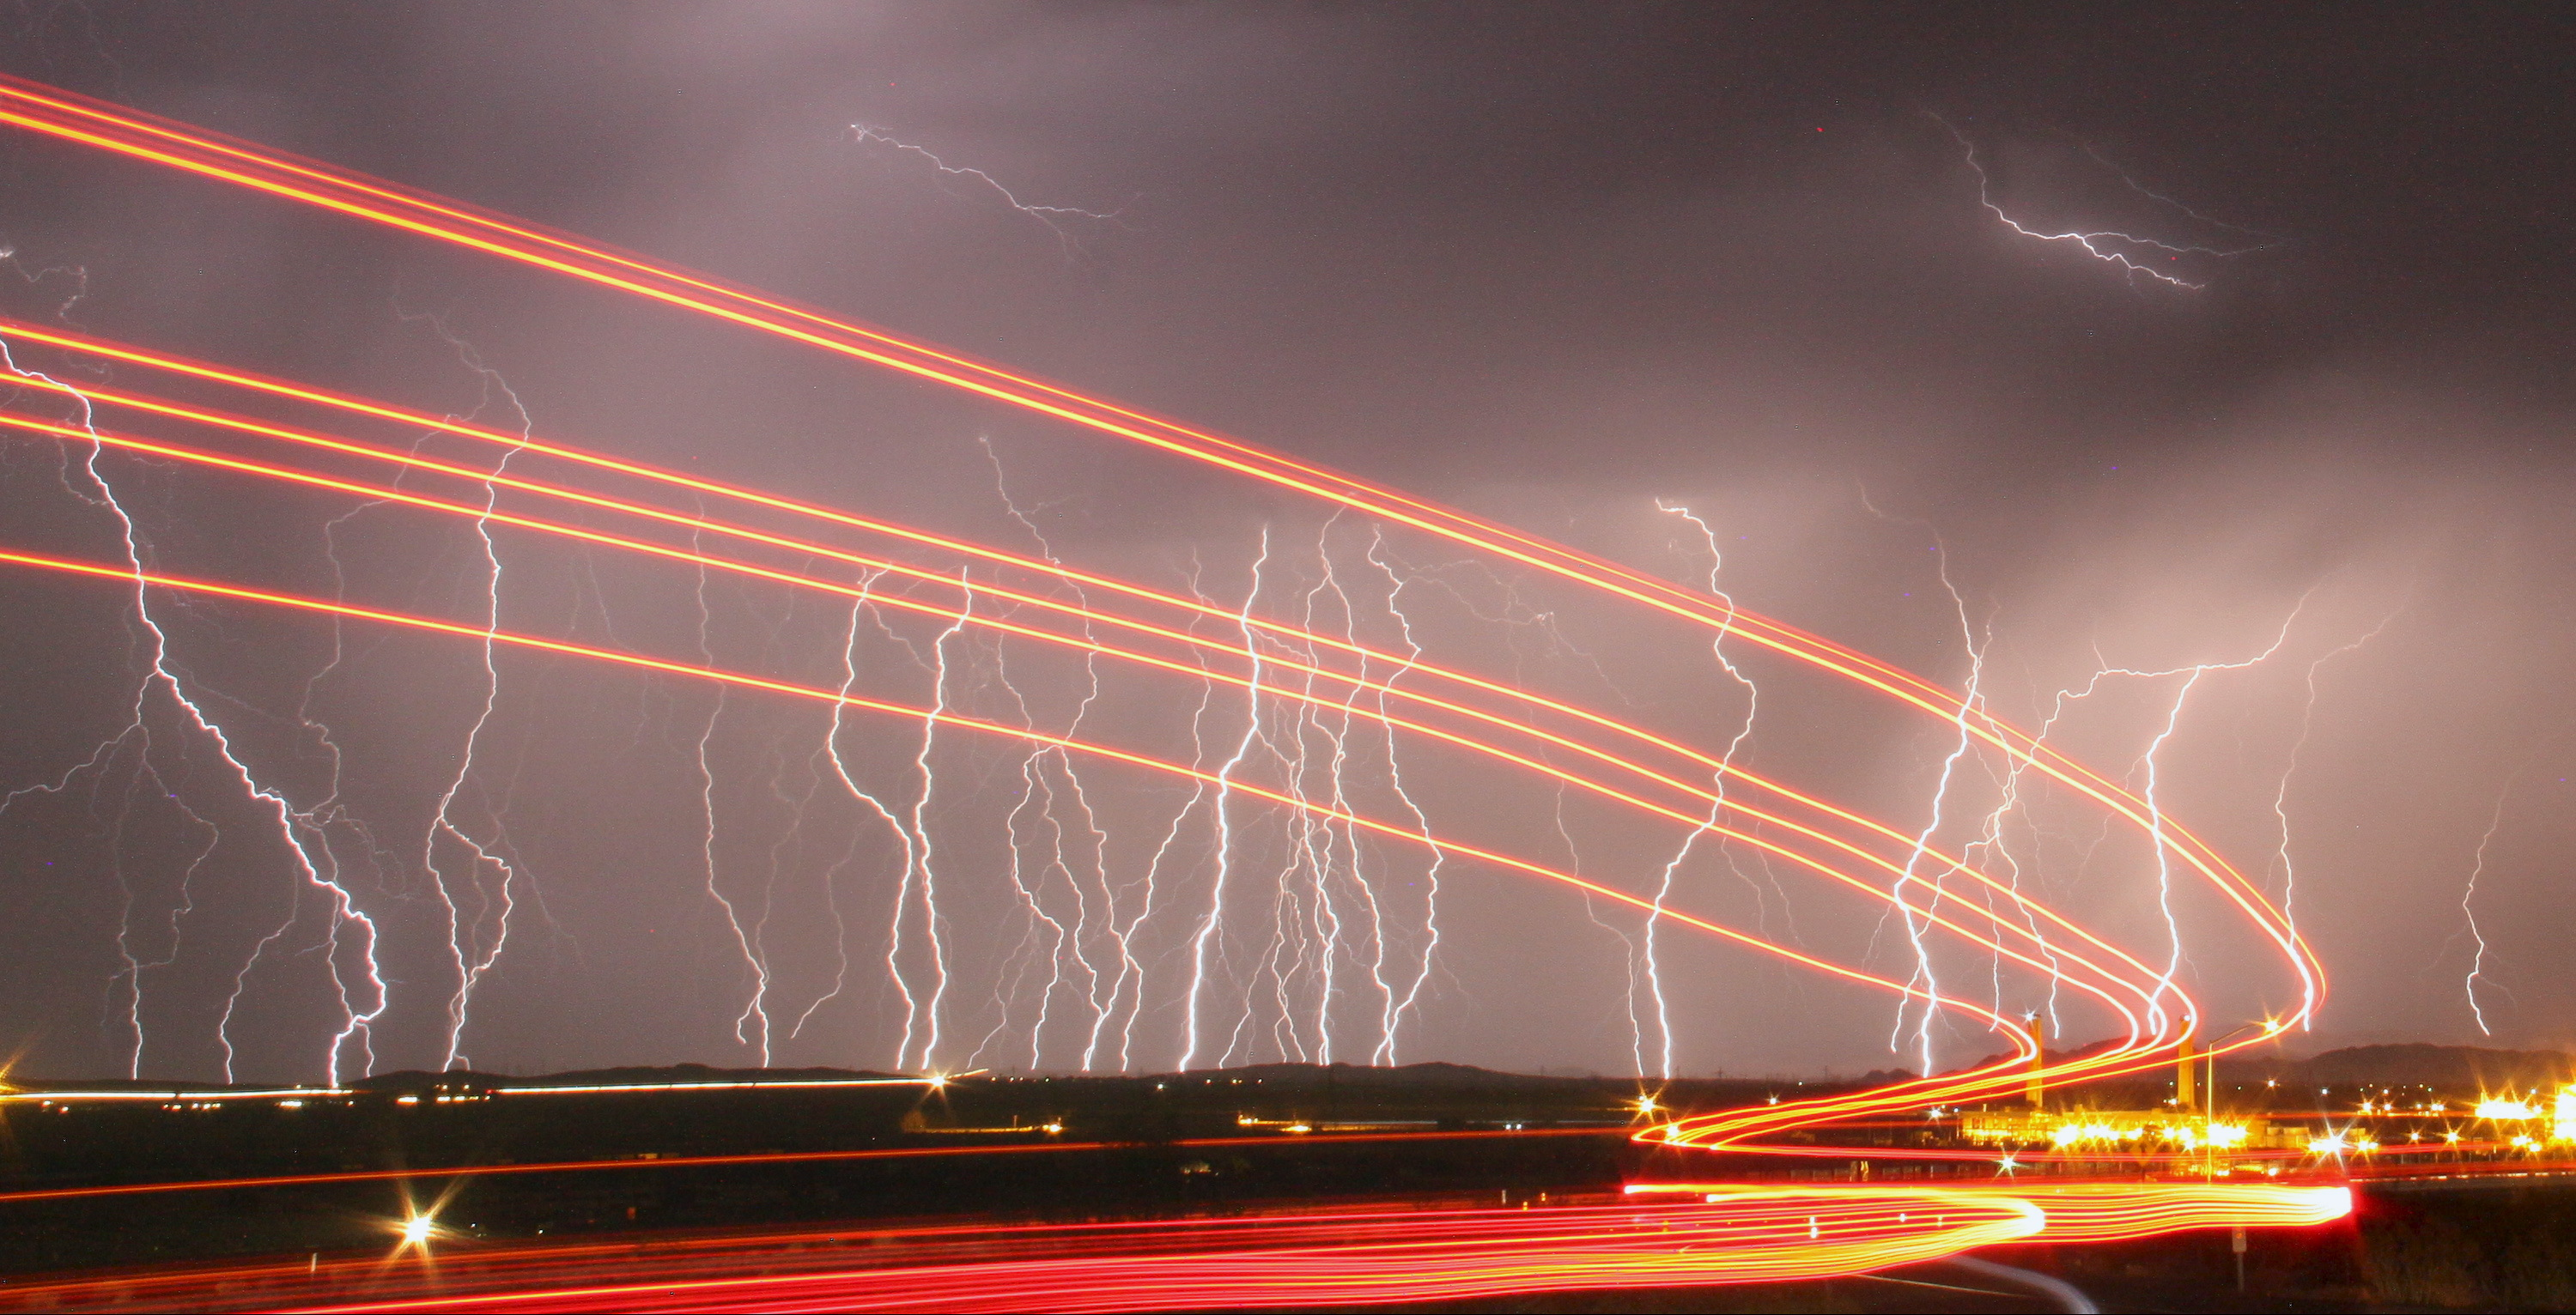 Mass lightning bolts light up night skies by the Daggett airport from monsoon storms passing over the high deserts early Wednesday, north of Barstow, California July 1, 2015. Picture taken using long exposure.  - GF10000145573